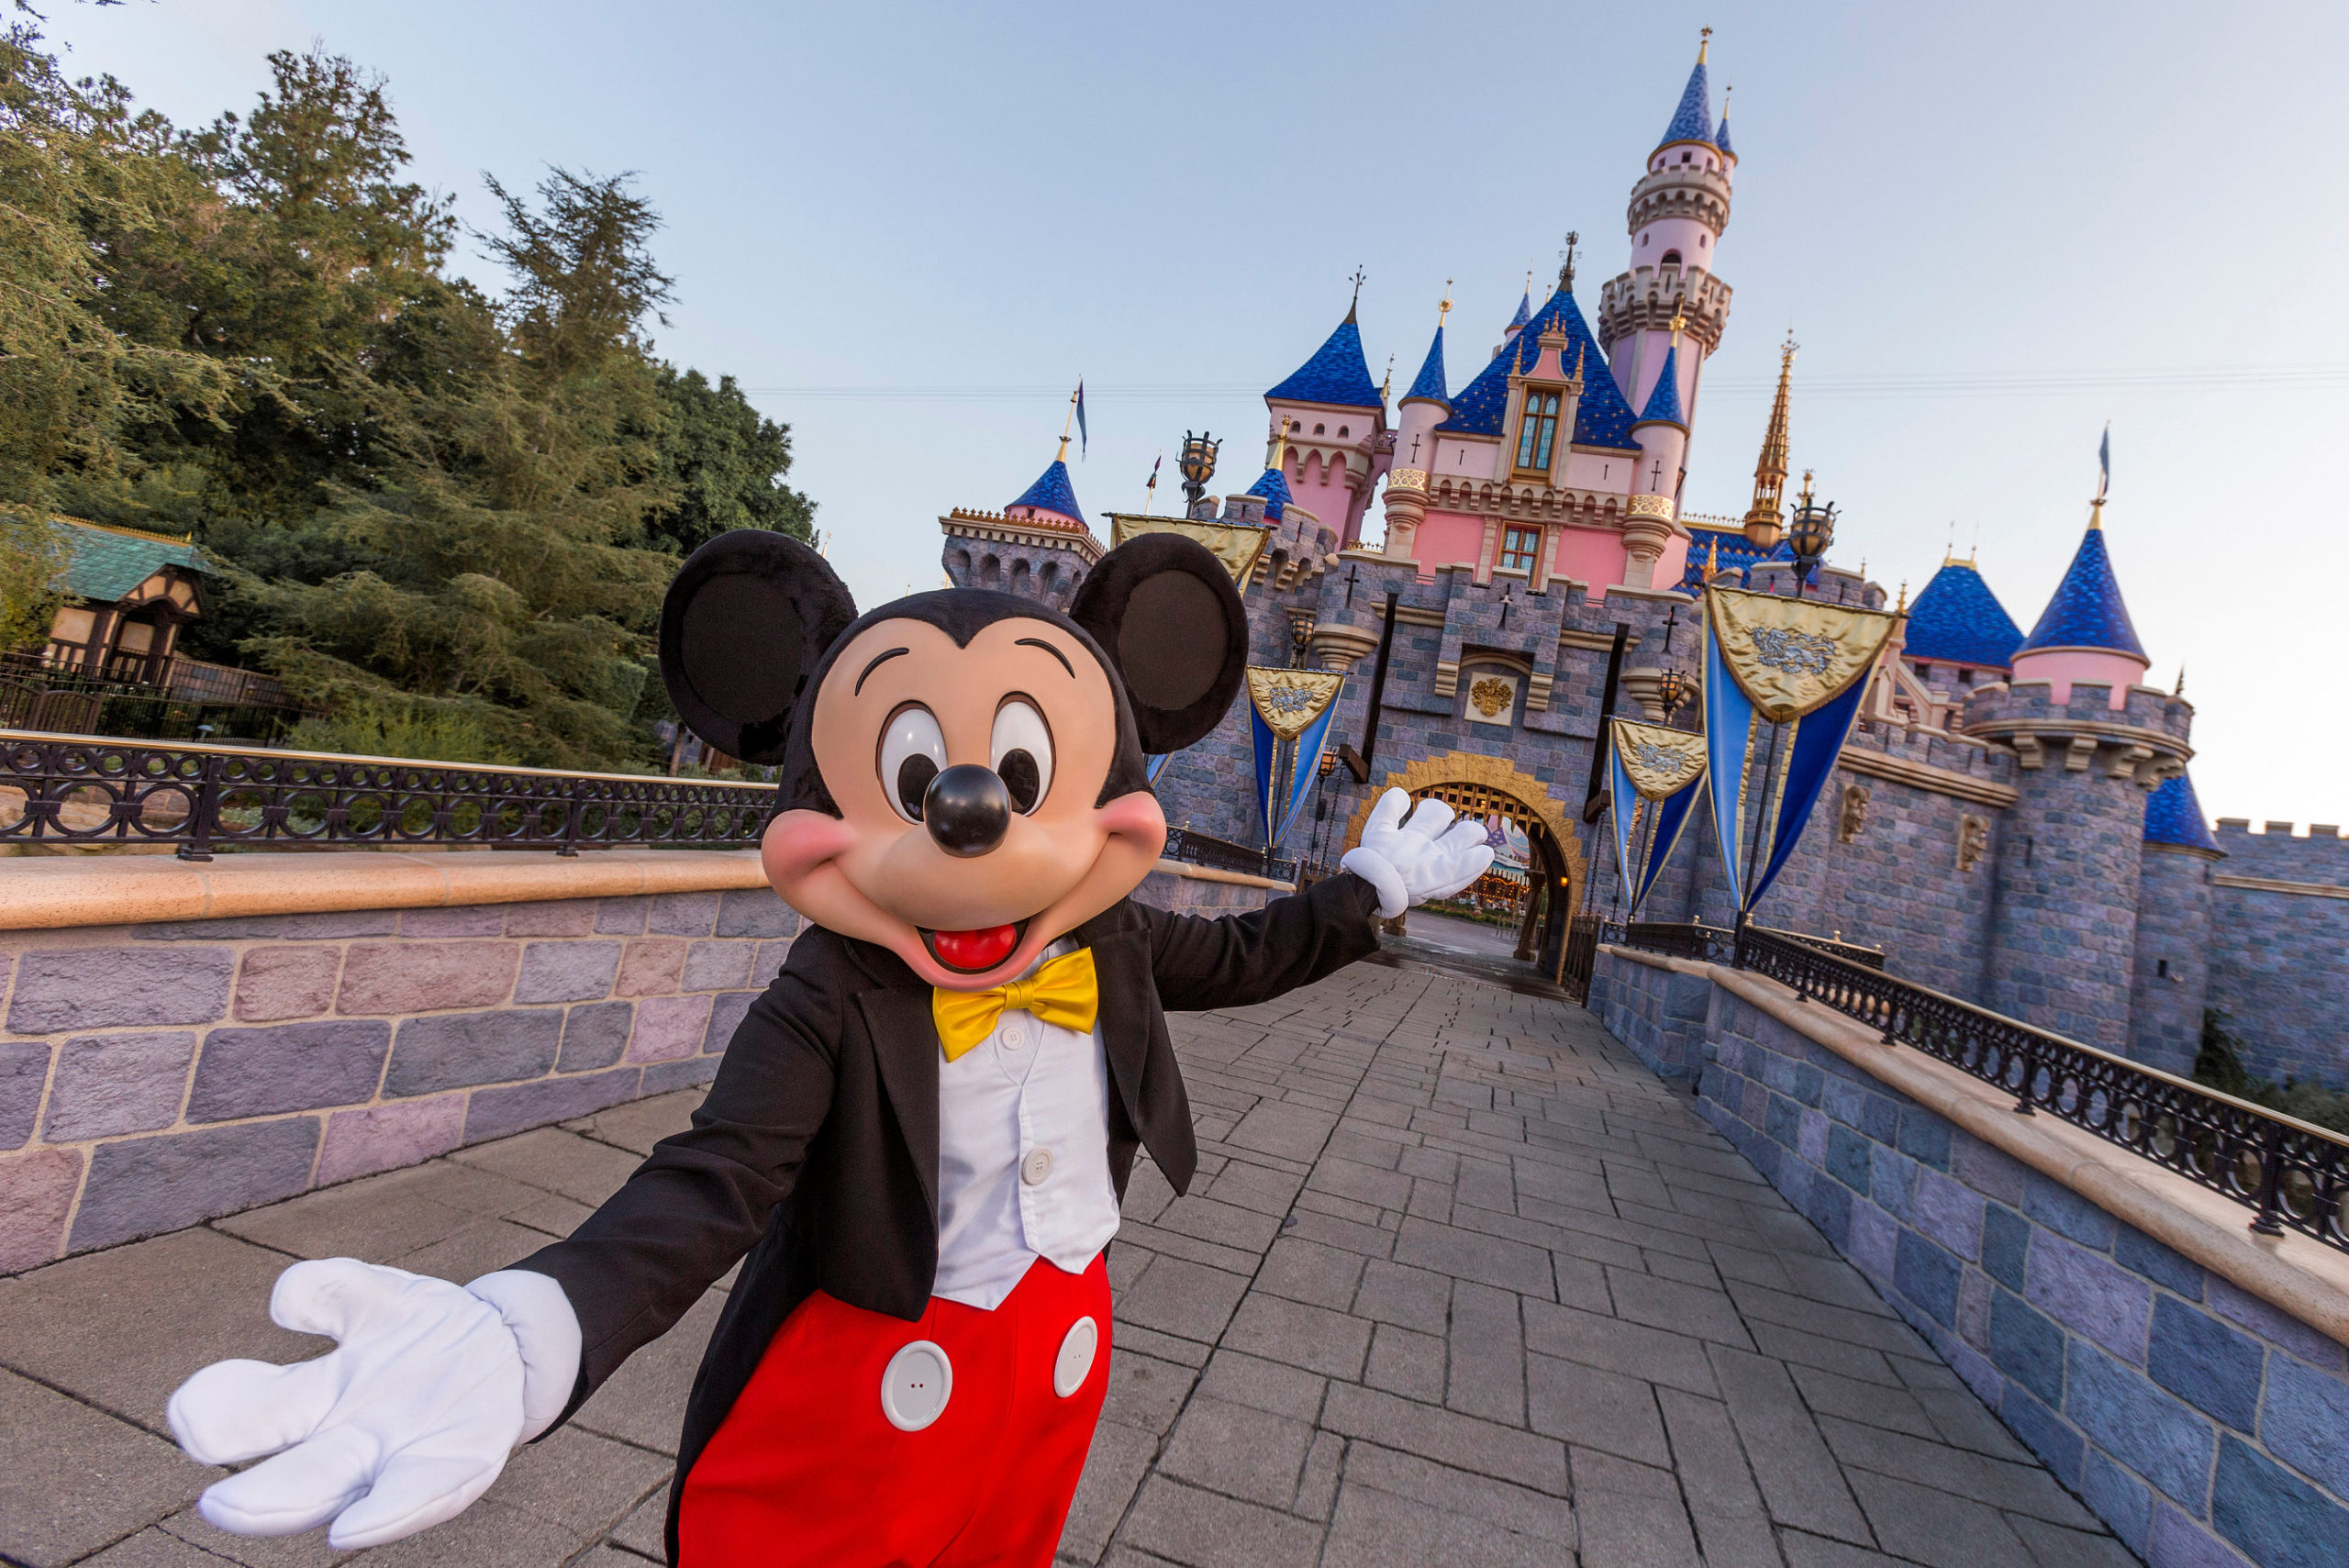 Both Disneyland Park and Disney California Adventure Park will reopen April 30